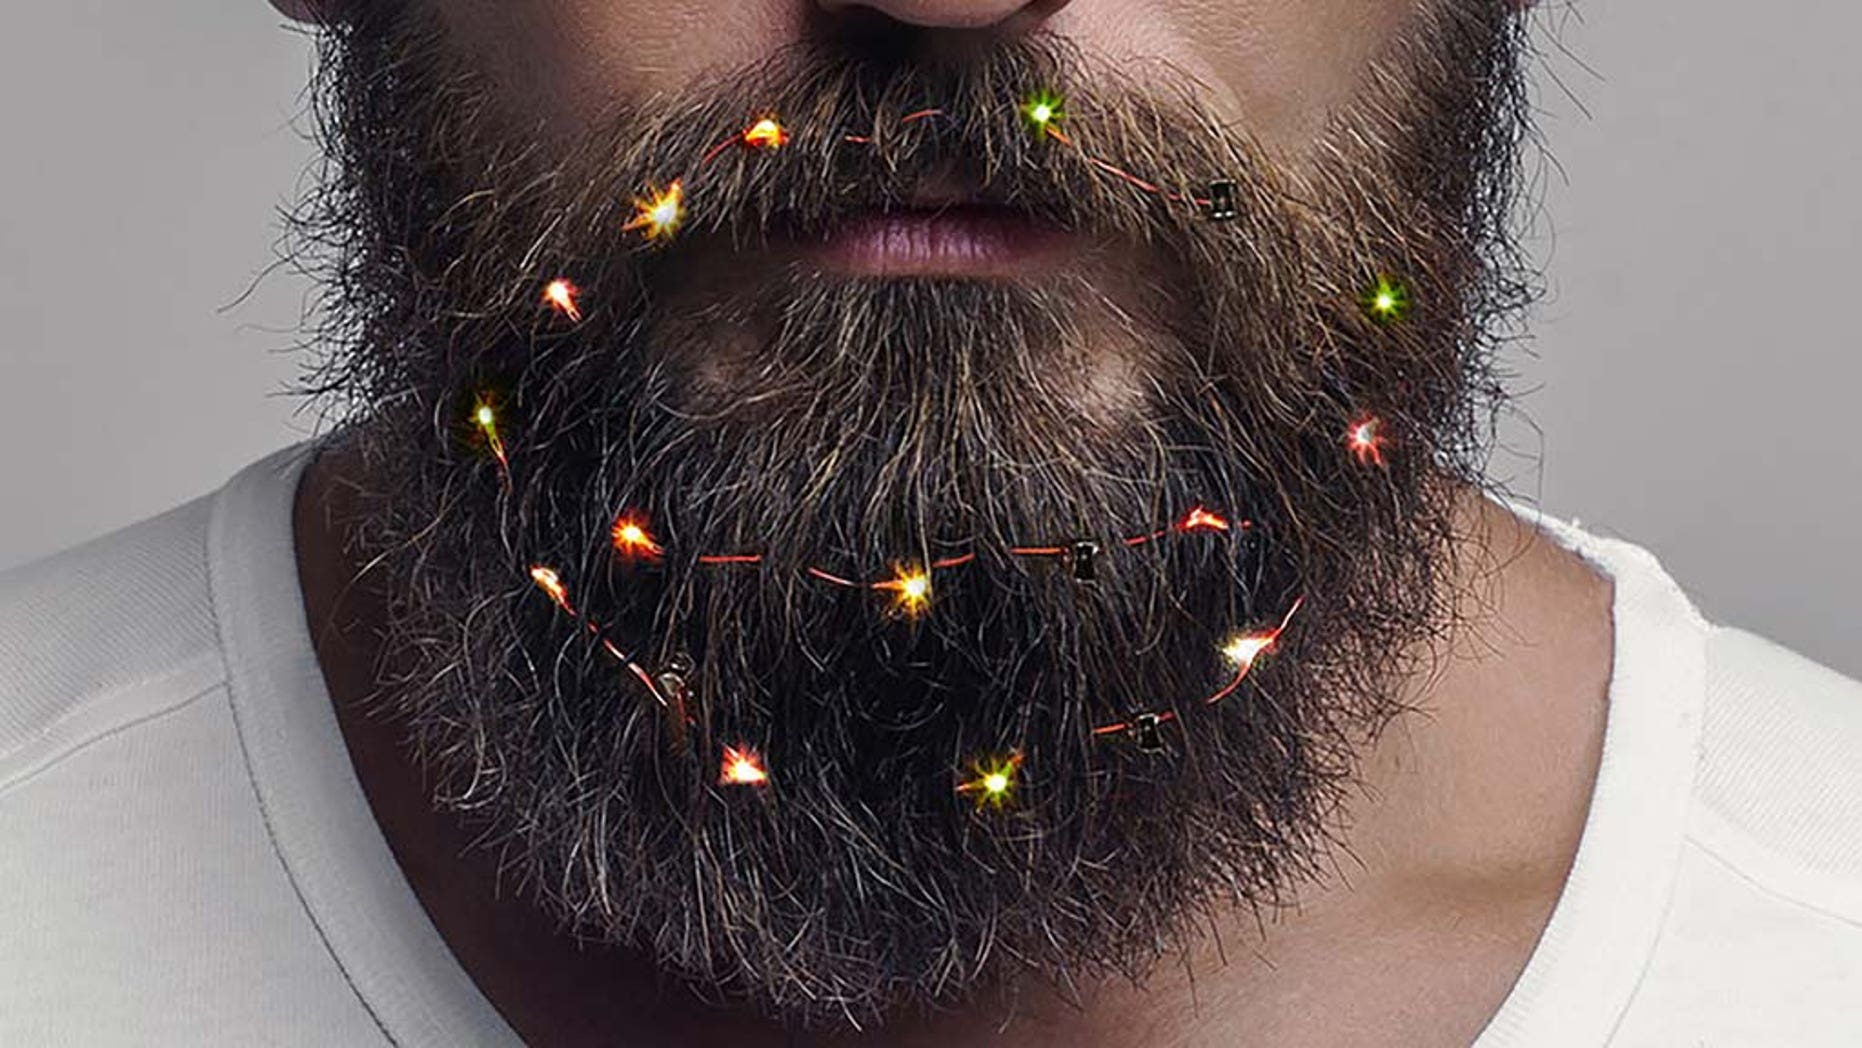 Get your beard in the holiday spirit with these beard lights.